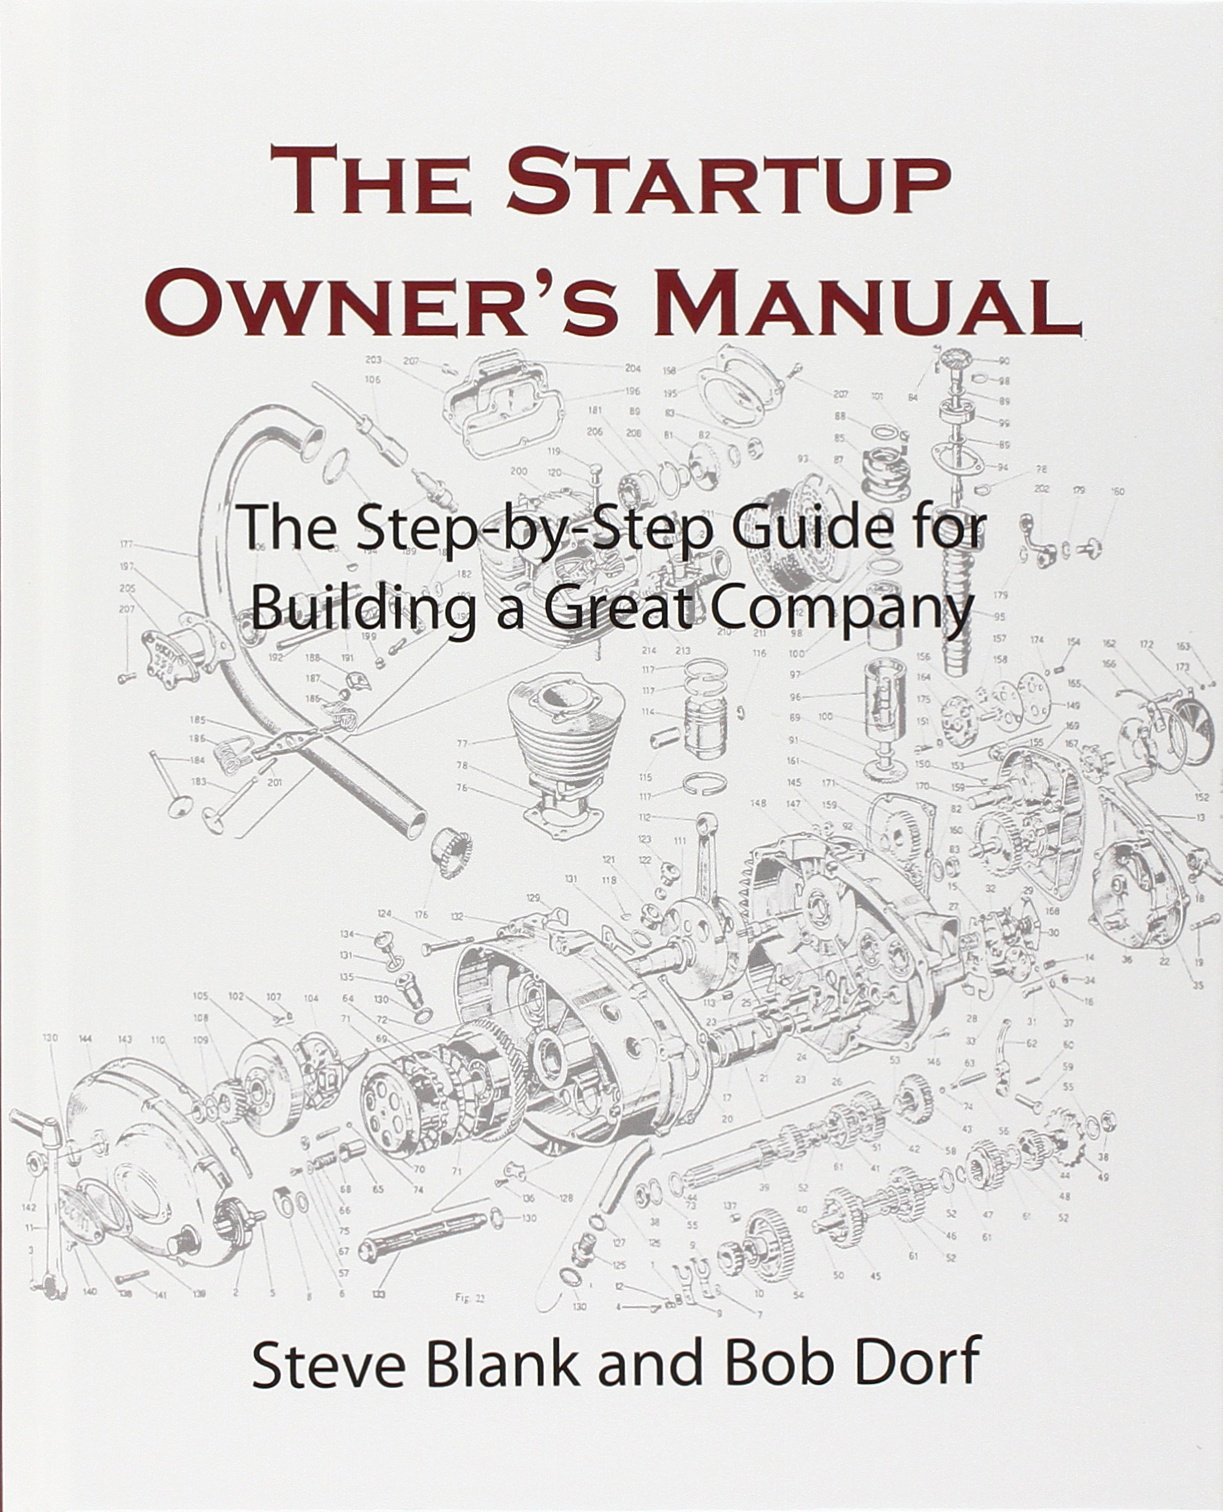 The startup owners manual the step by step guide for building a the startup owners manual the step by step guide for building a great company steve blank bob dorf 9780984999309 amazon books fandeluxe Gallery